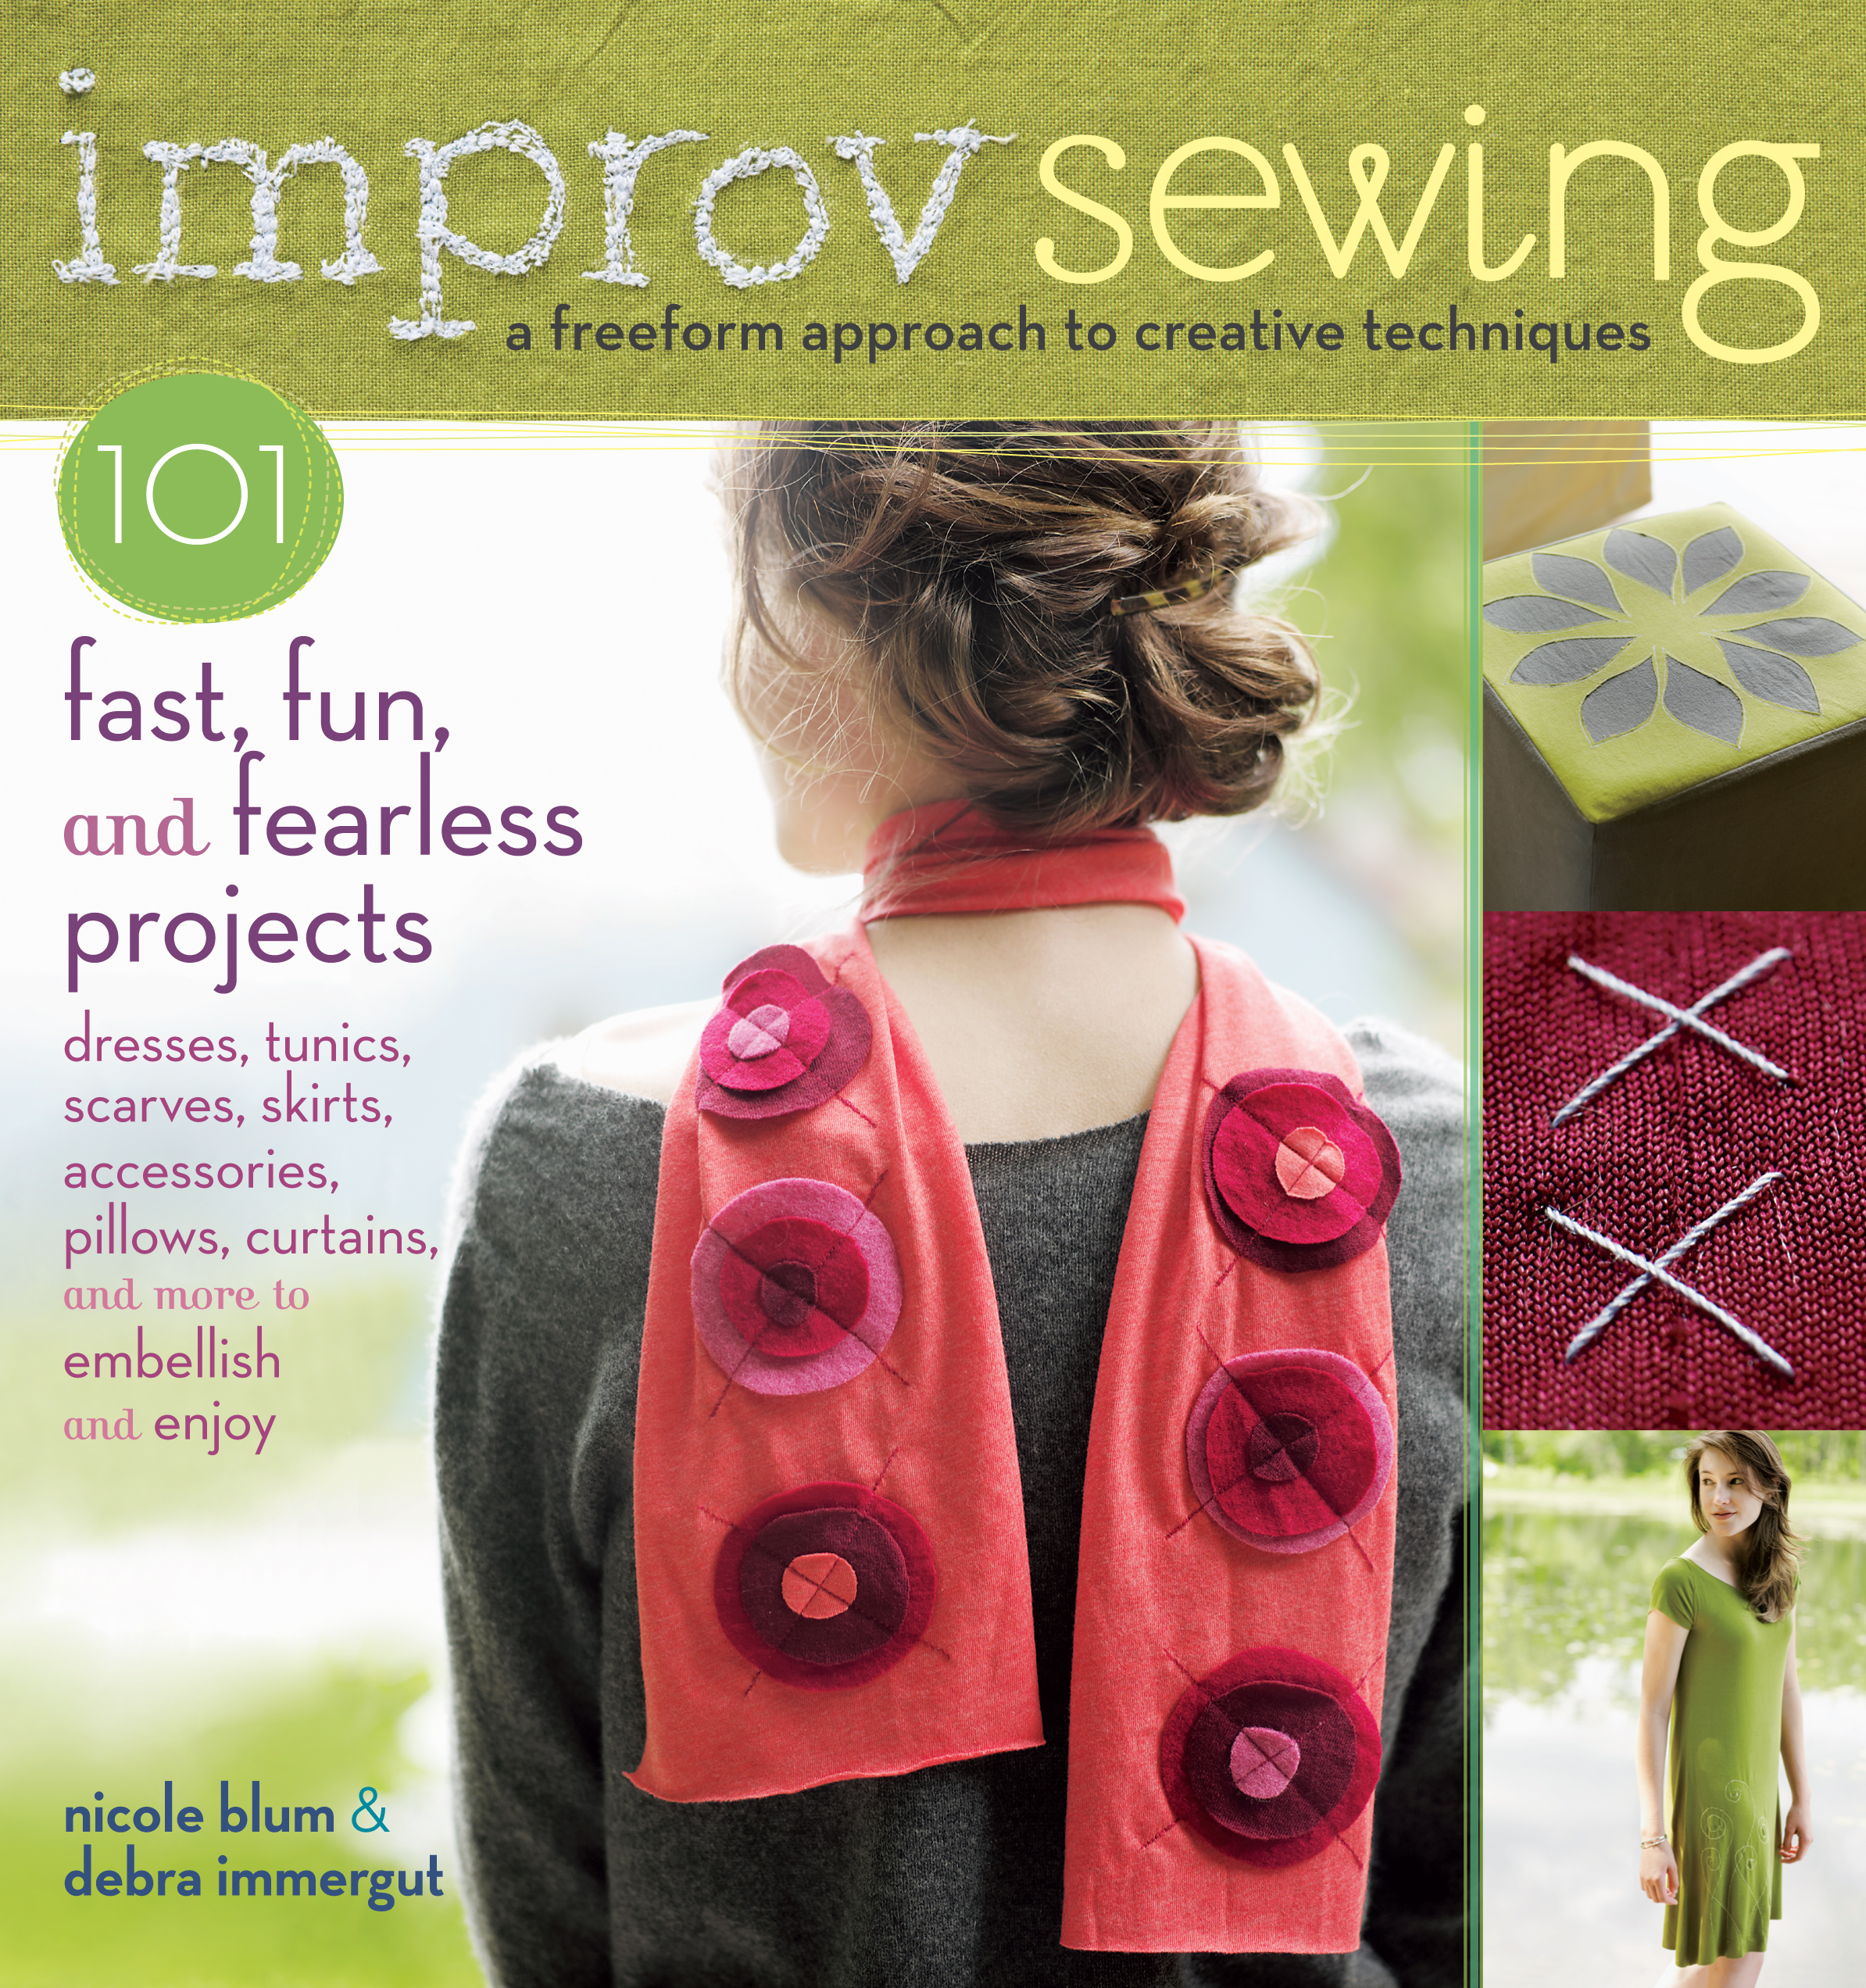 Improv Sewing A Freeform Approach to Creative Techniques; 101 Fast, Fun, and Fearless Projects: Dresses, Tunics, Scarves, Skirts, Accessories, Pillows, Curtains, and More - Nicole Blum